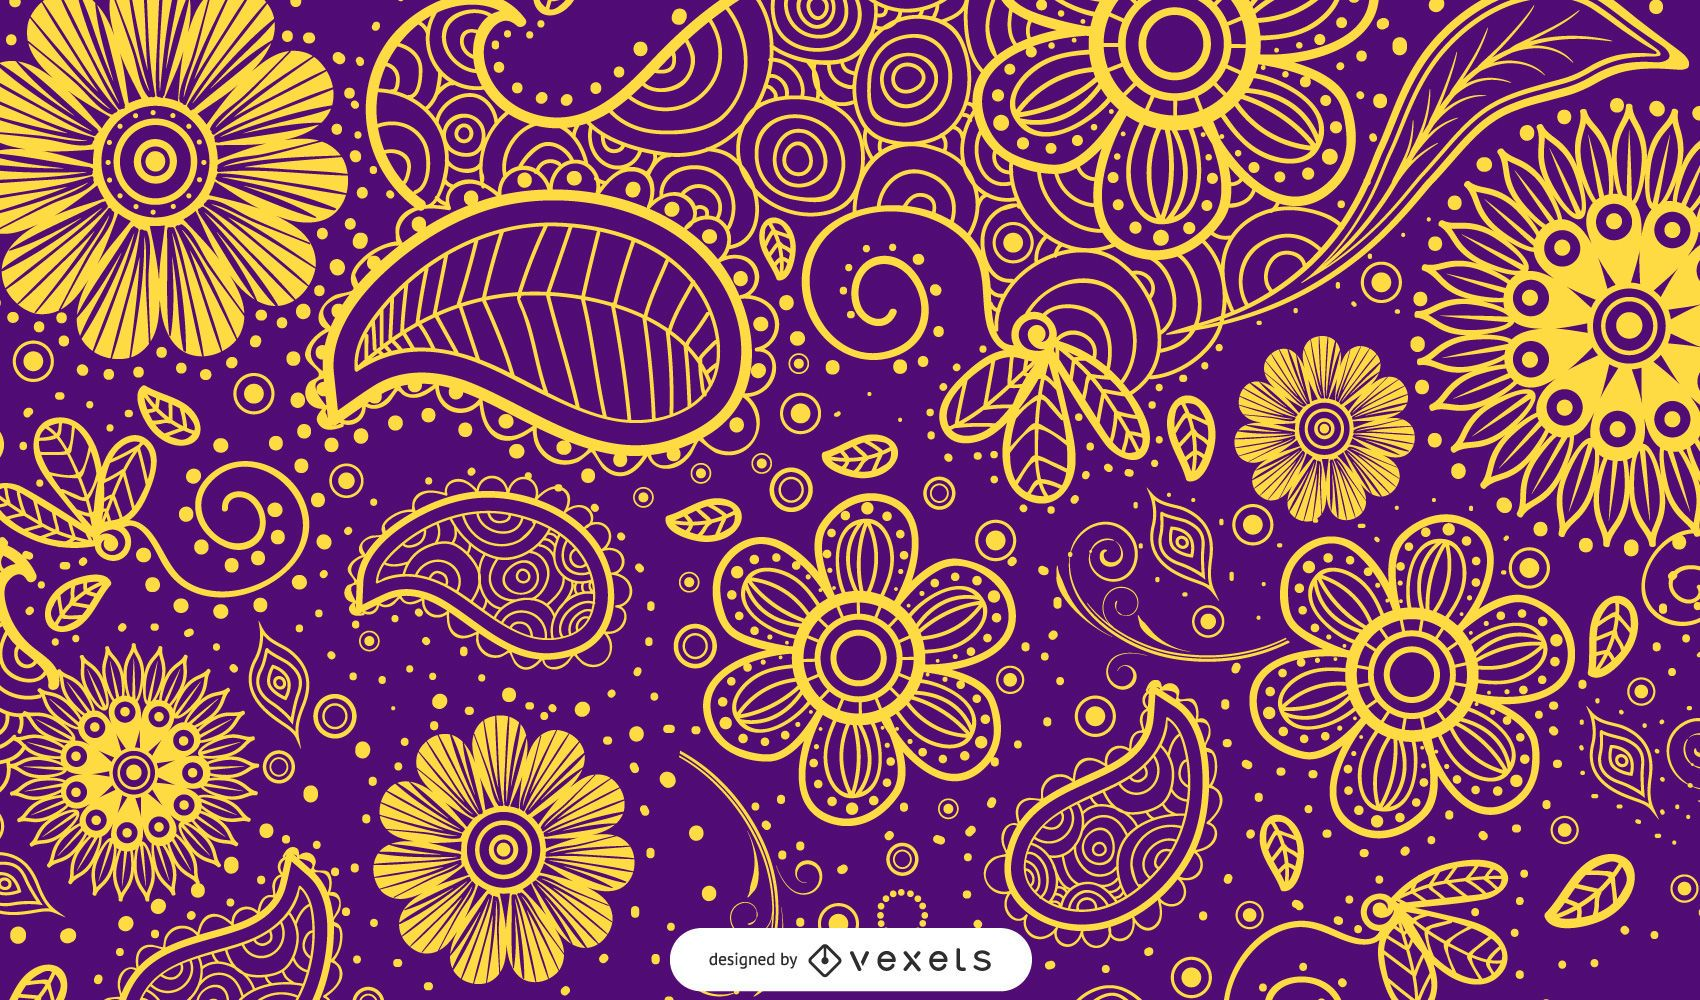 Illustrated paisley design in multiple colors